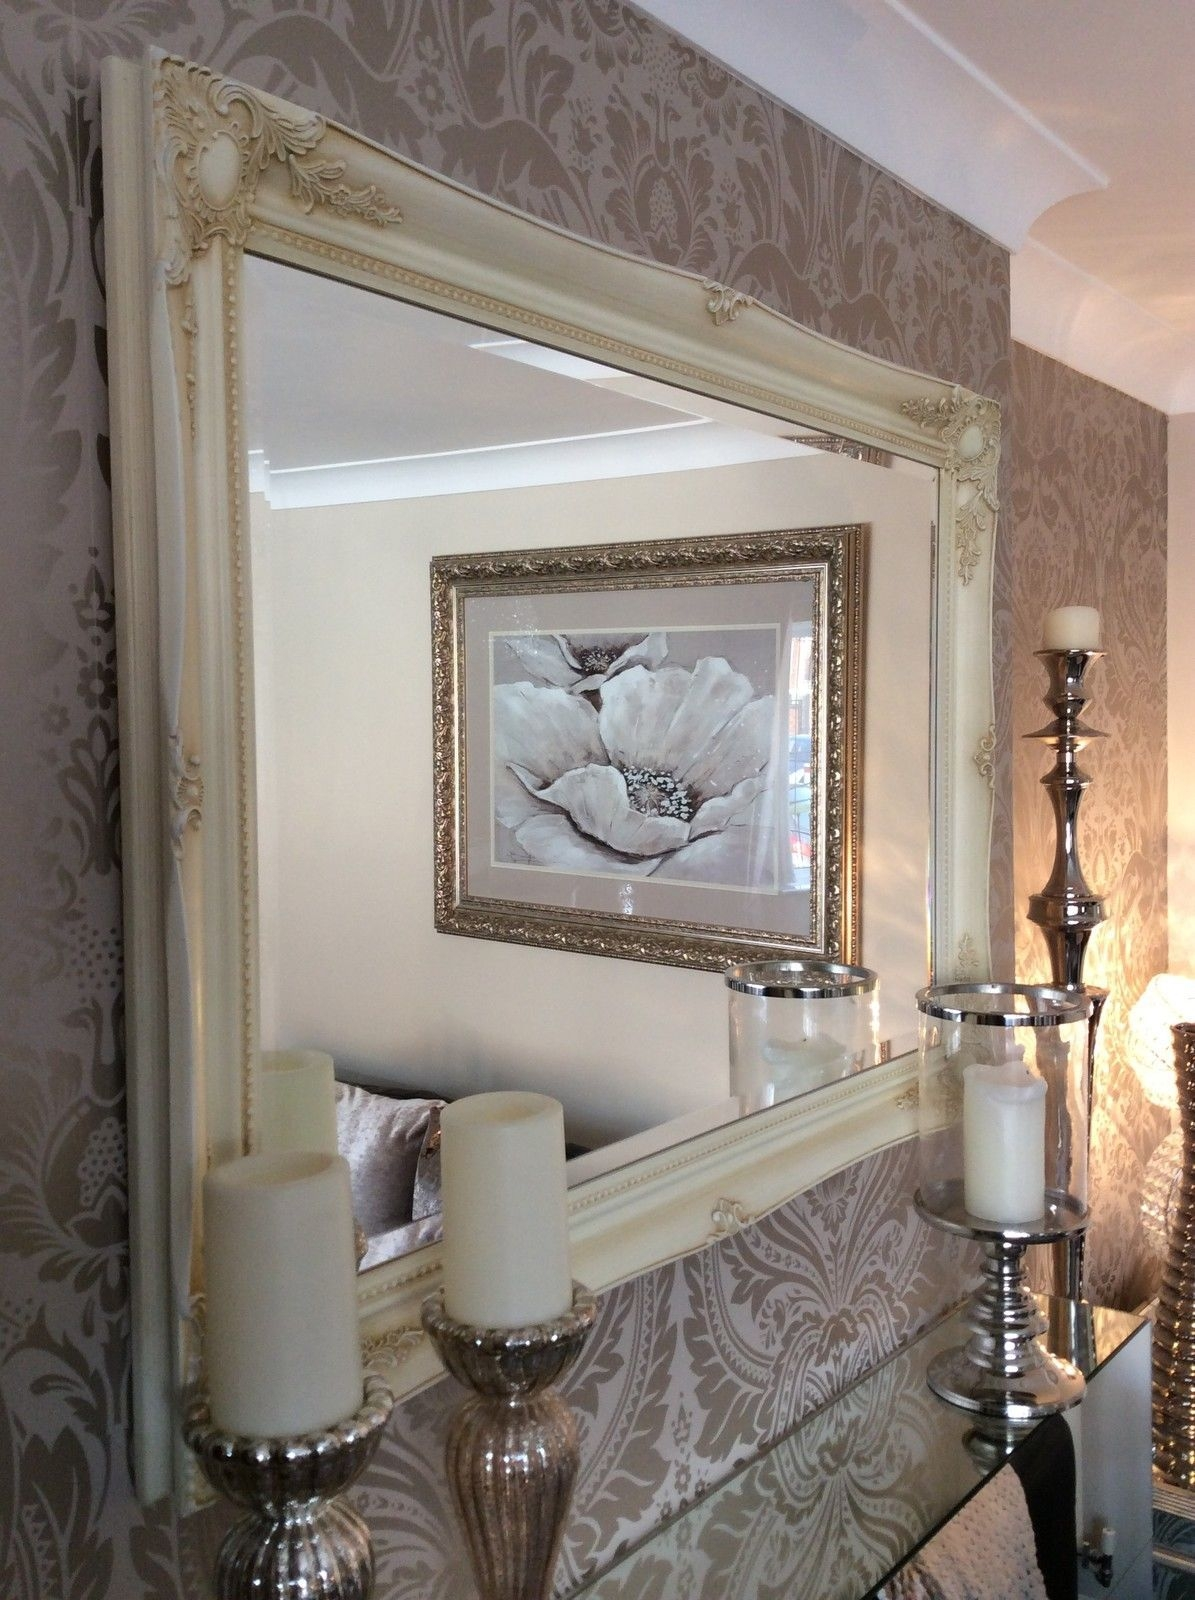 Cream Shab Chic Framed Ornate Wall Overmantle Mirror Choose Throughout Huge Ornate Mirror (Image 4 of 15)